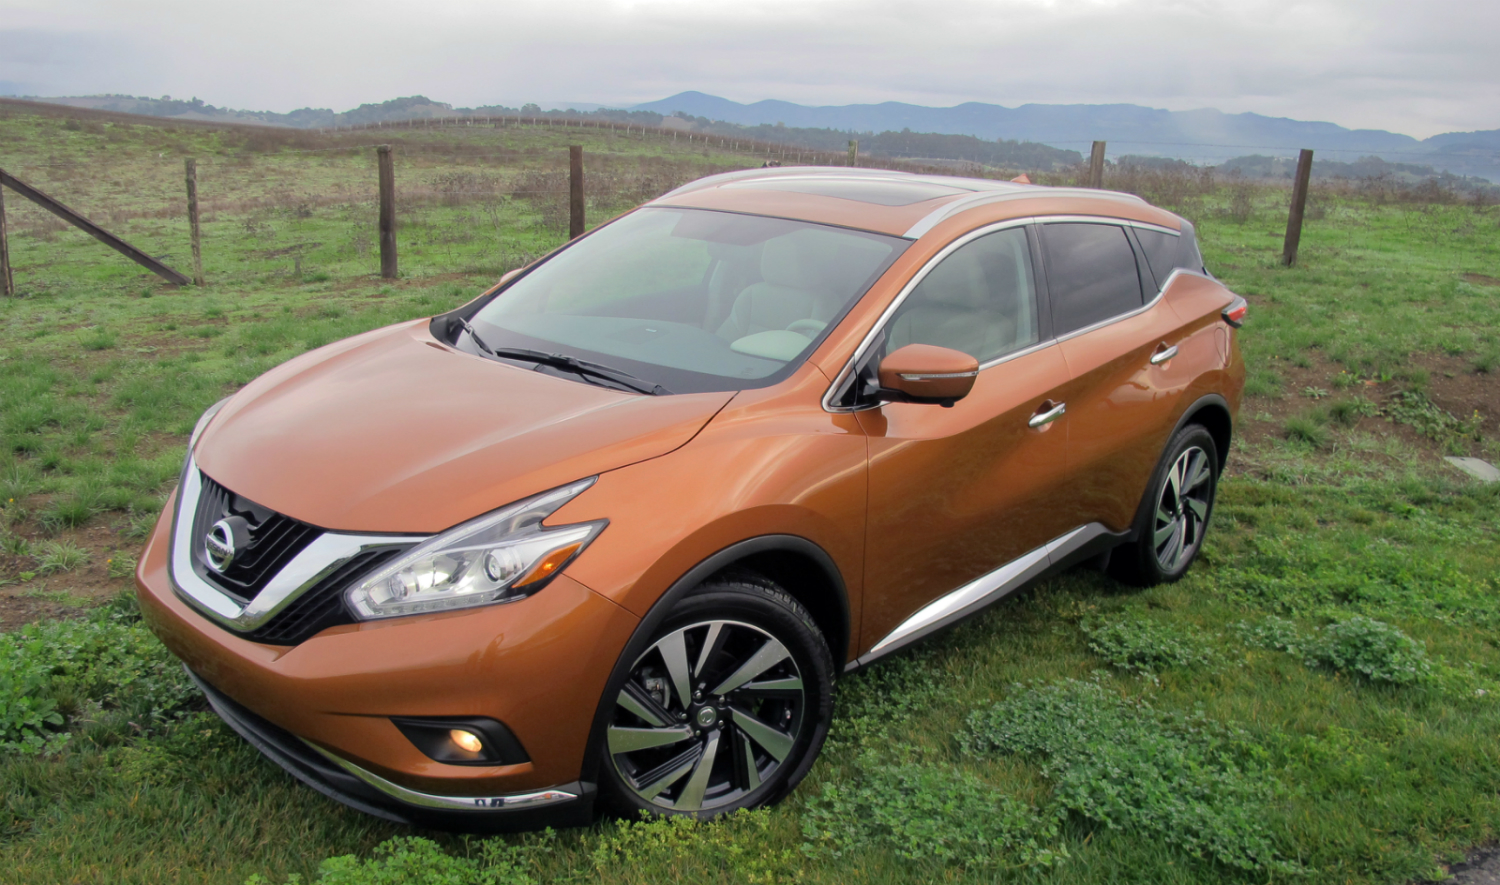 Rearview Mirror Backup Camera Wireless furthermore Index moreover 2015 Nissan Murano Review in addition Related search furthermore Backup Camera 7 Monitor Wireless License Plate. on costco backup camera